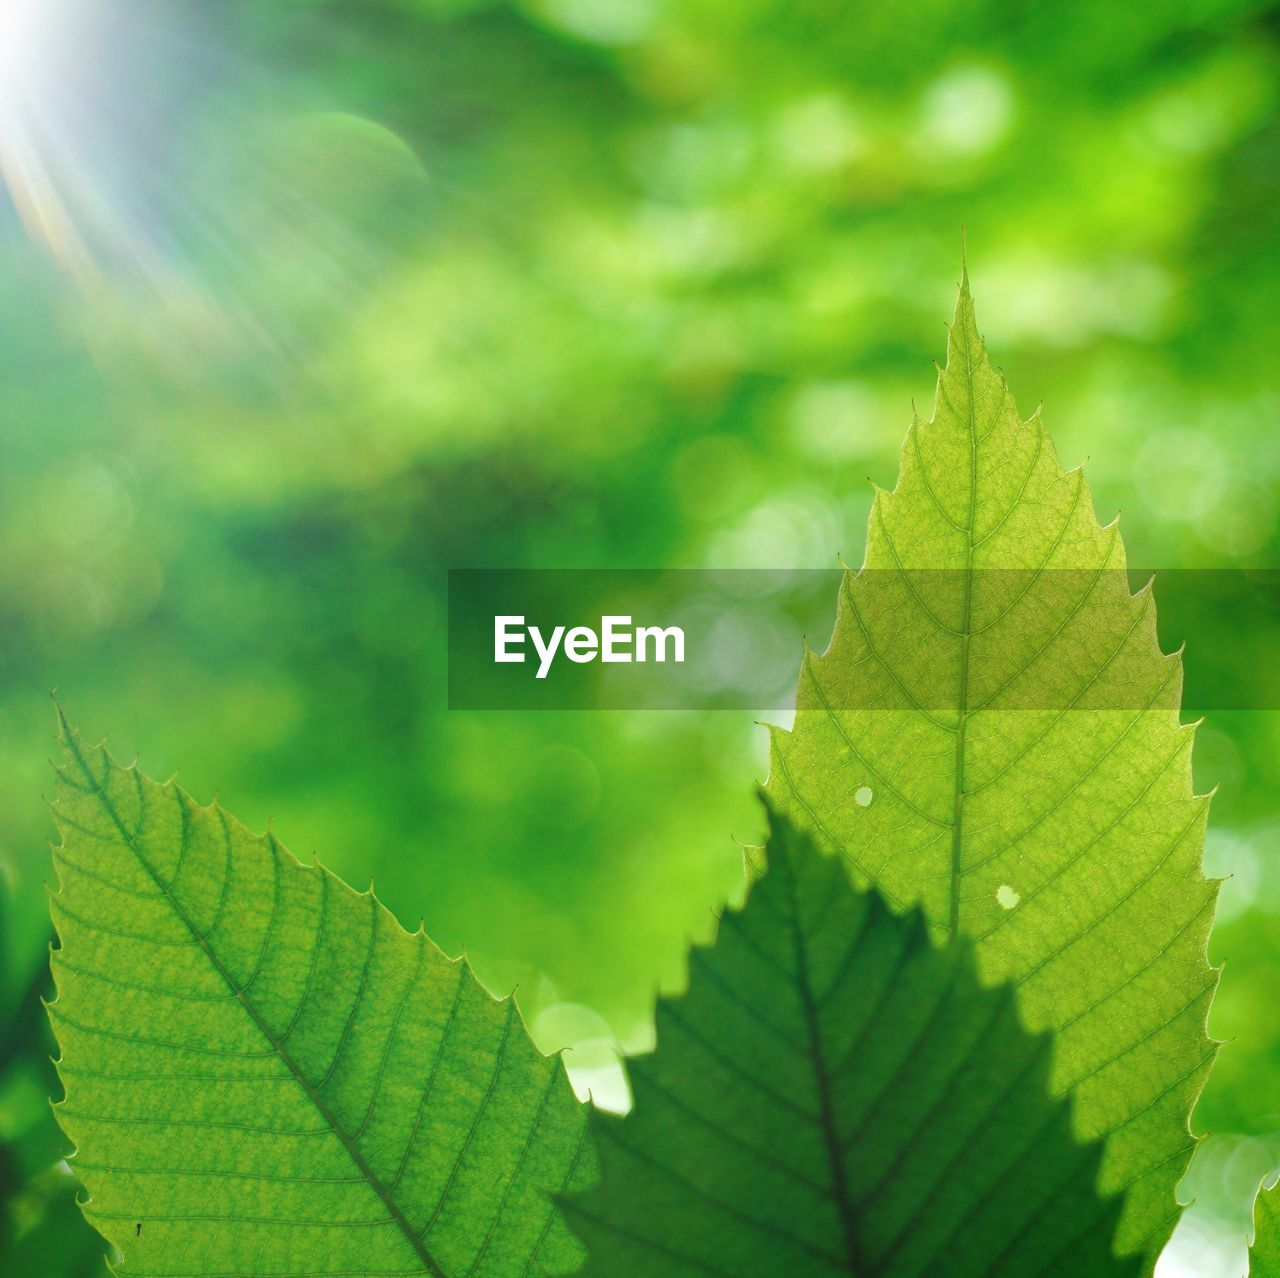 leaf, plant part, green color, plant, nature, growth, beauty in nature, leaf vein, close-up, day, no people, sunlight, focus on foreground, outdoors, selective focus, leaves, natural pattern, autumn, tranquility, tree, focus